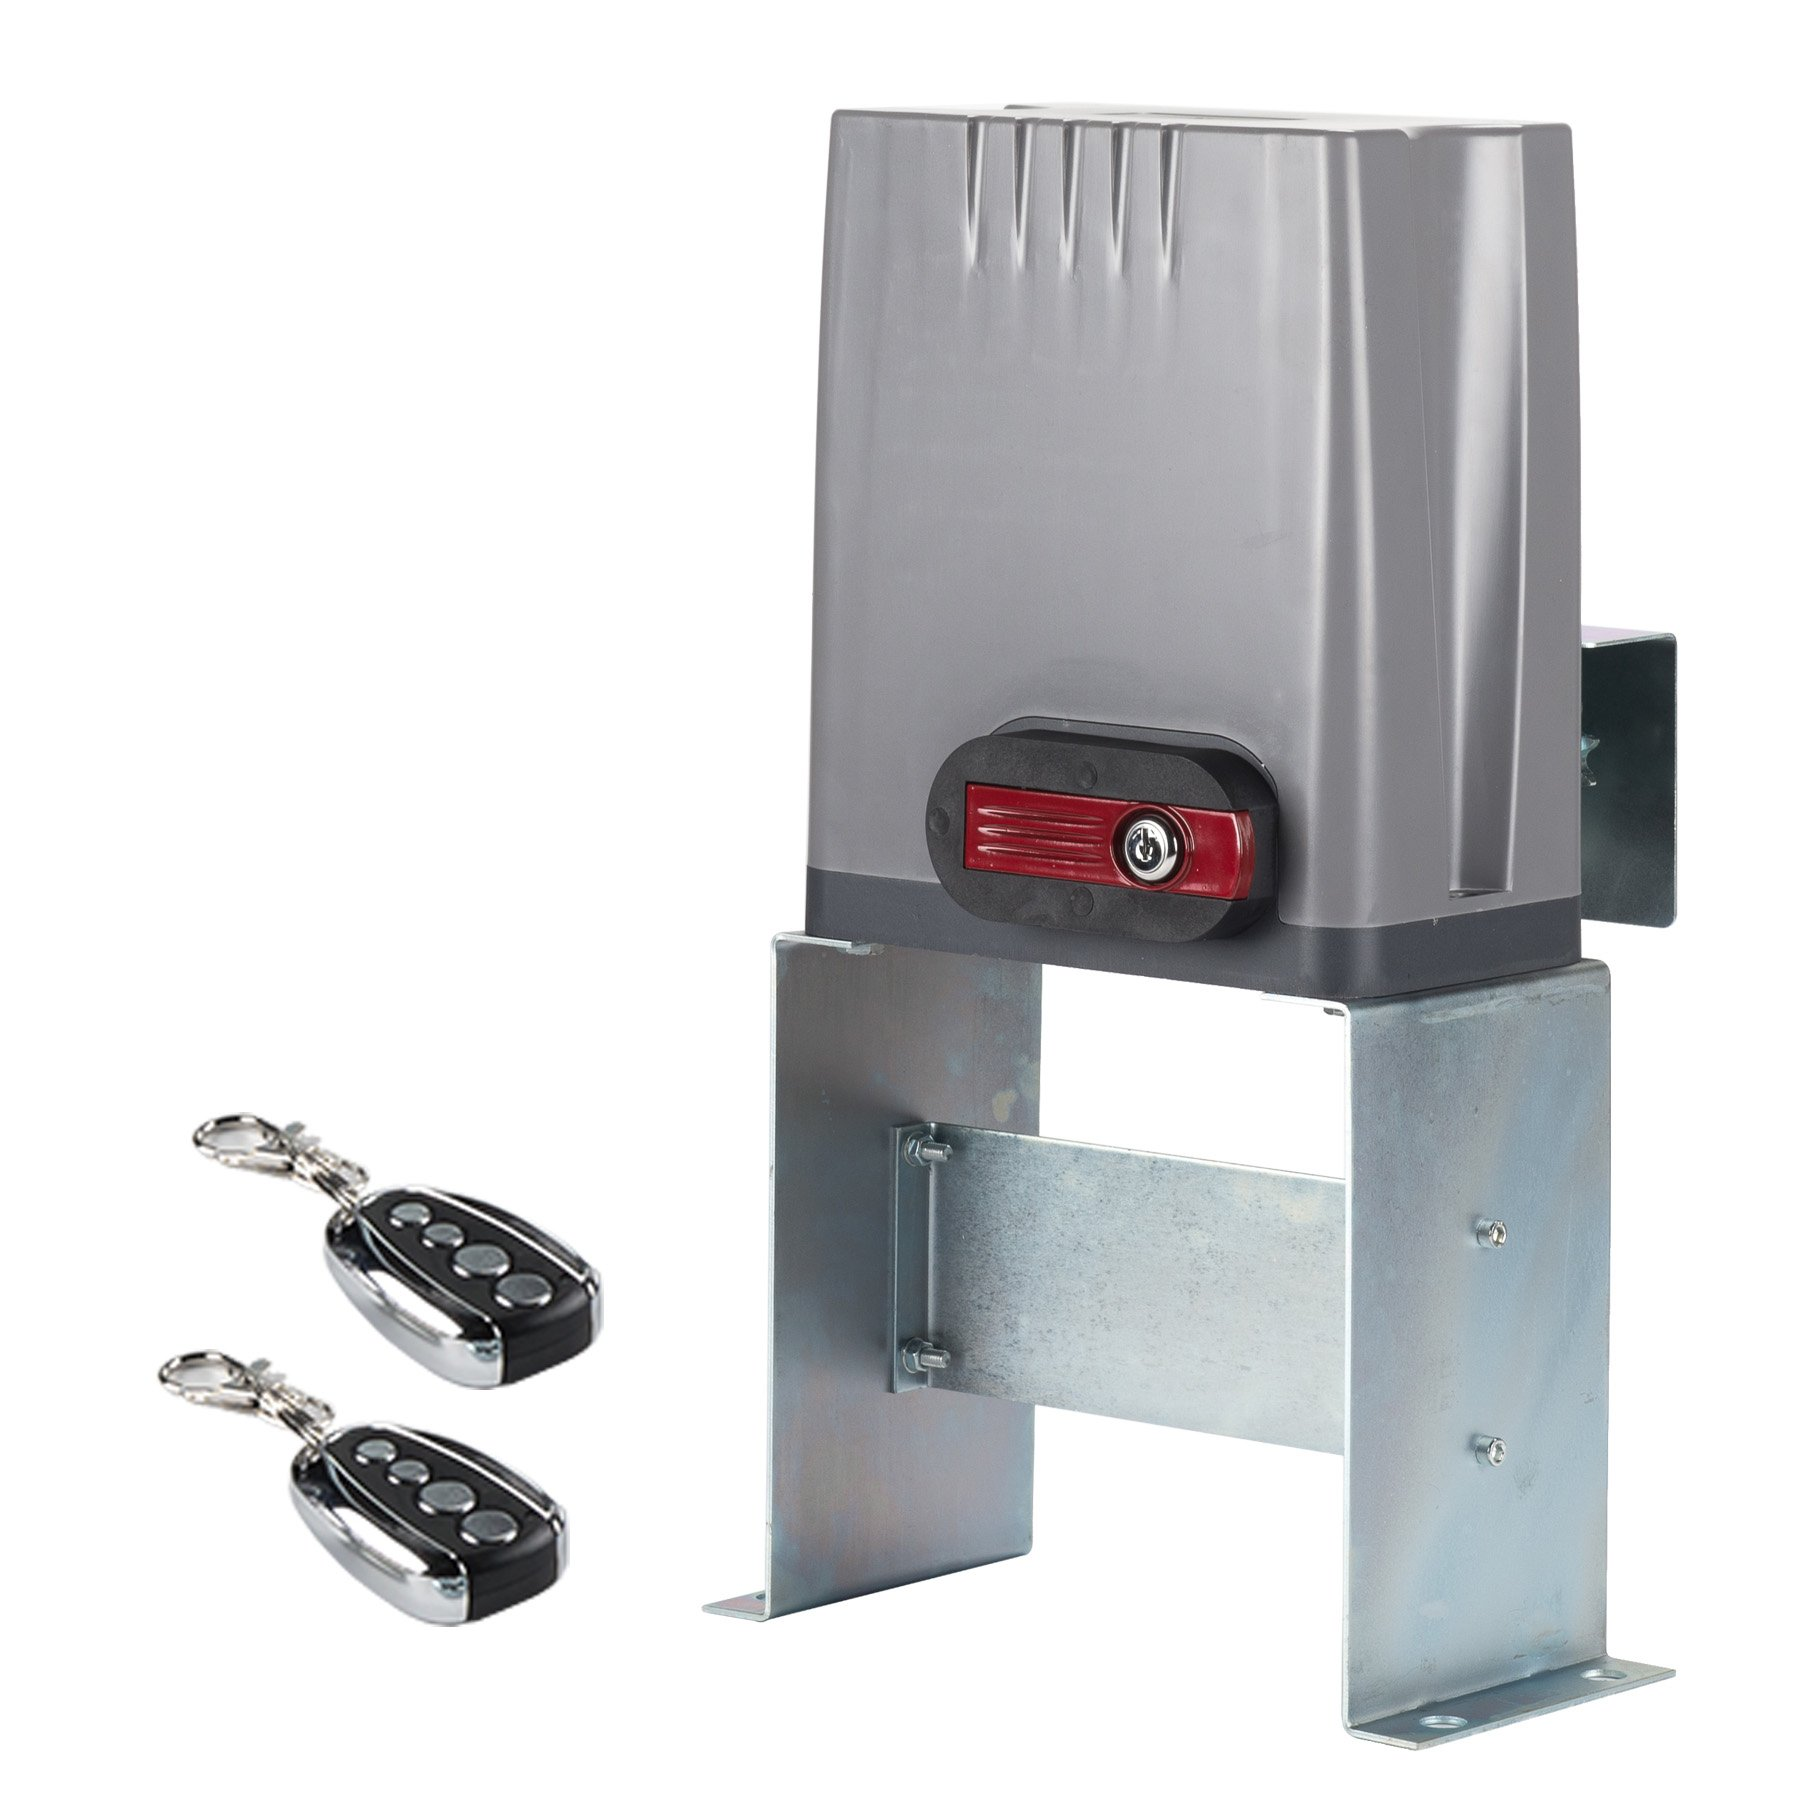 CO-Z Sliding Gate Opener with Wireless Remotes, Dual Roller Gate Motor, Automatic Slide Gate Operater Kit for Fence Driveway, Auto Chain Gate Opener Hardware with Controllers(For 1800Lbs Gate)